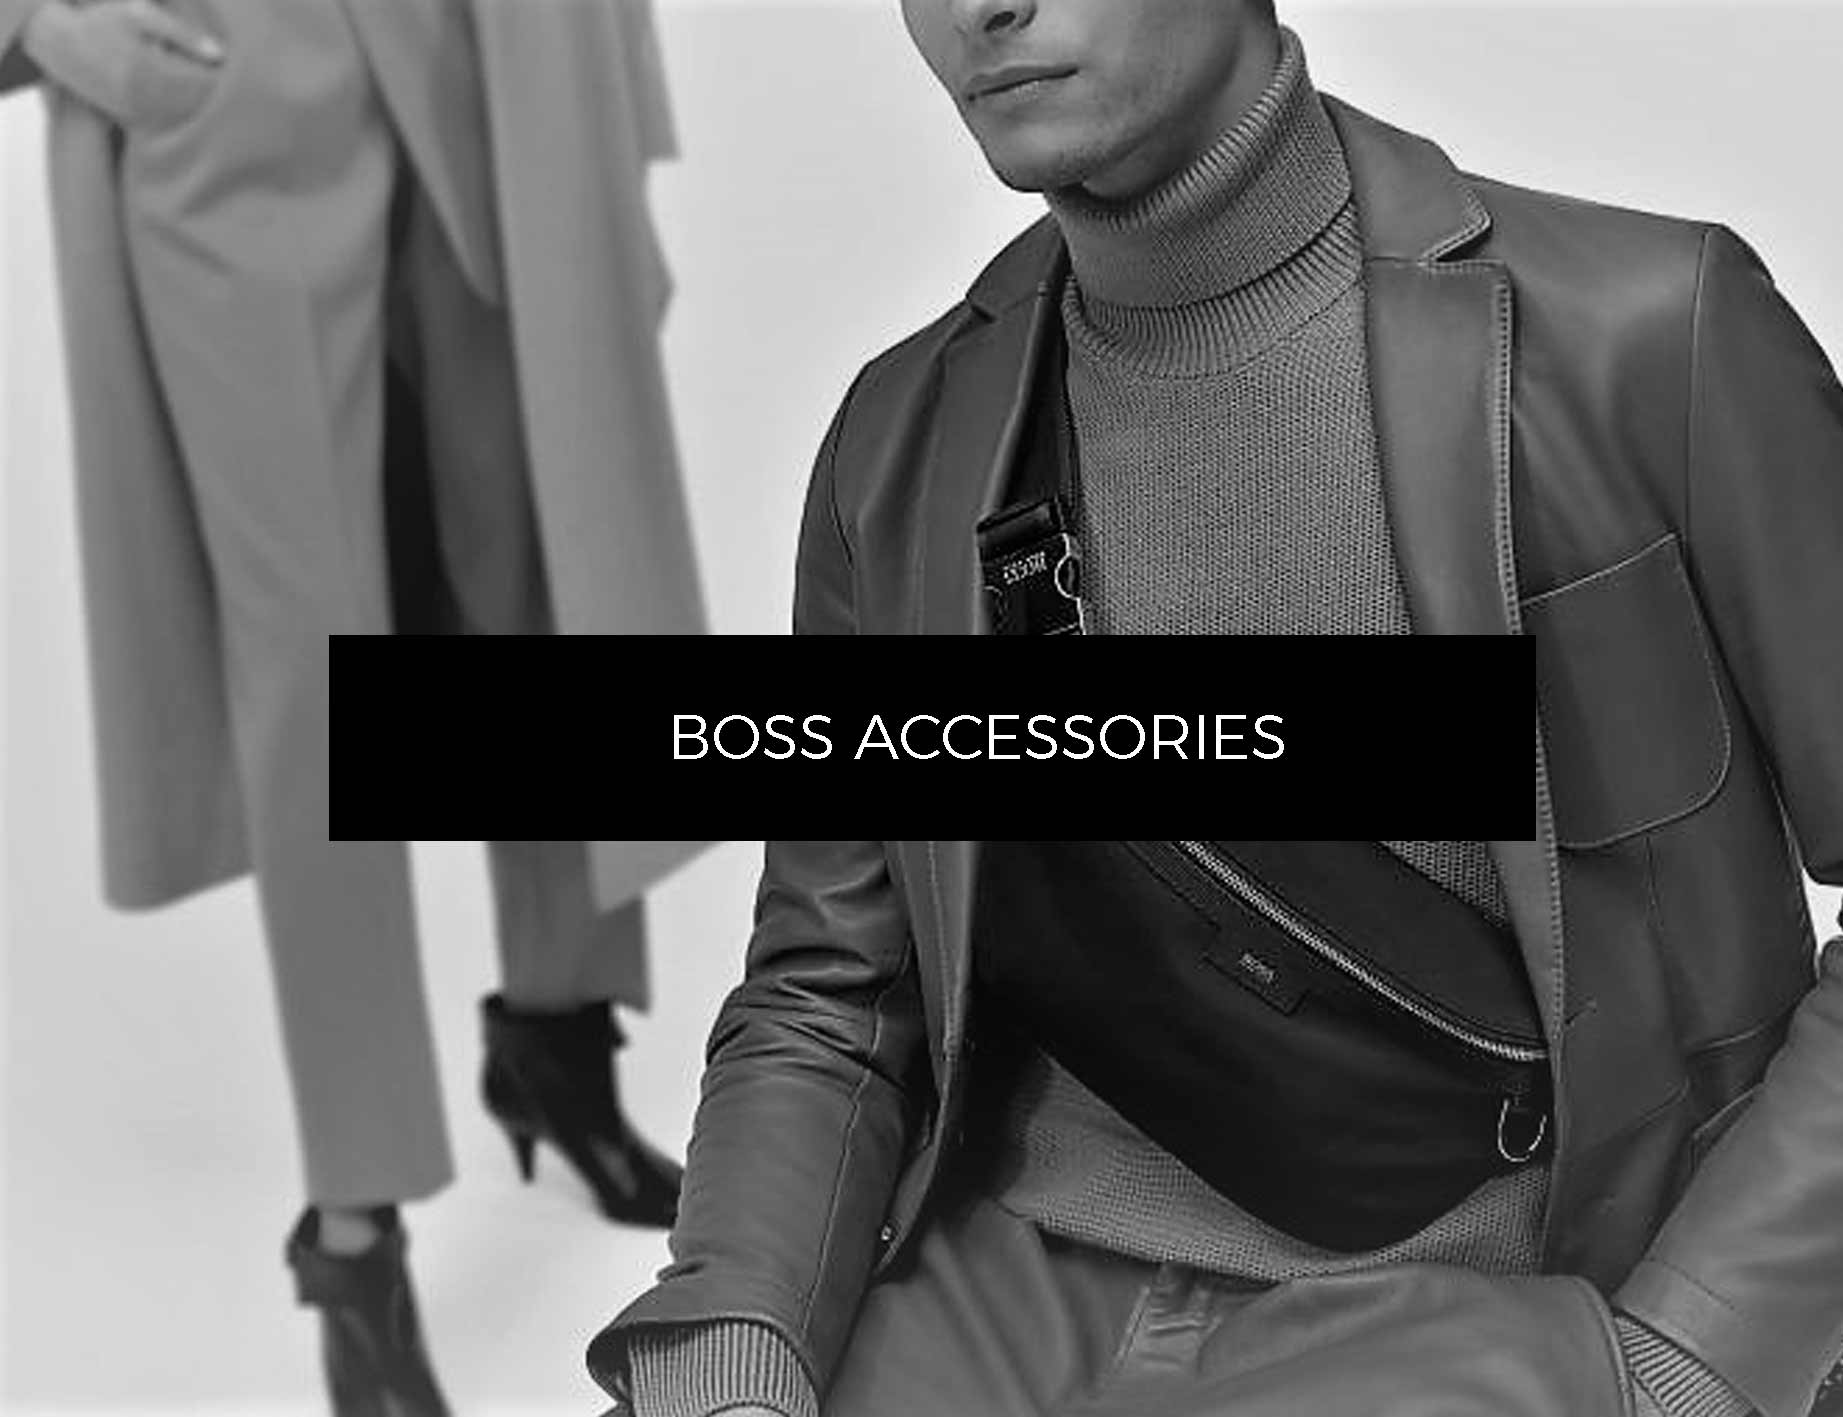 Hugo Boss Accessories